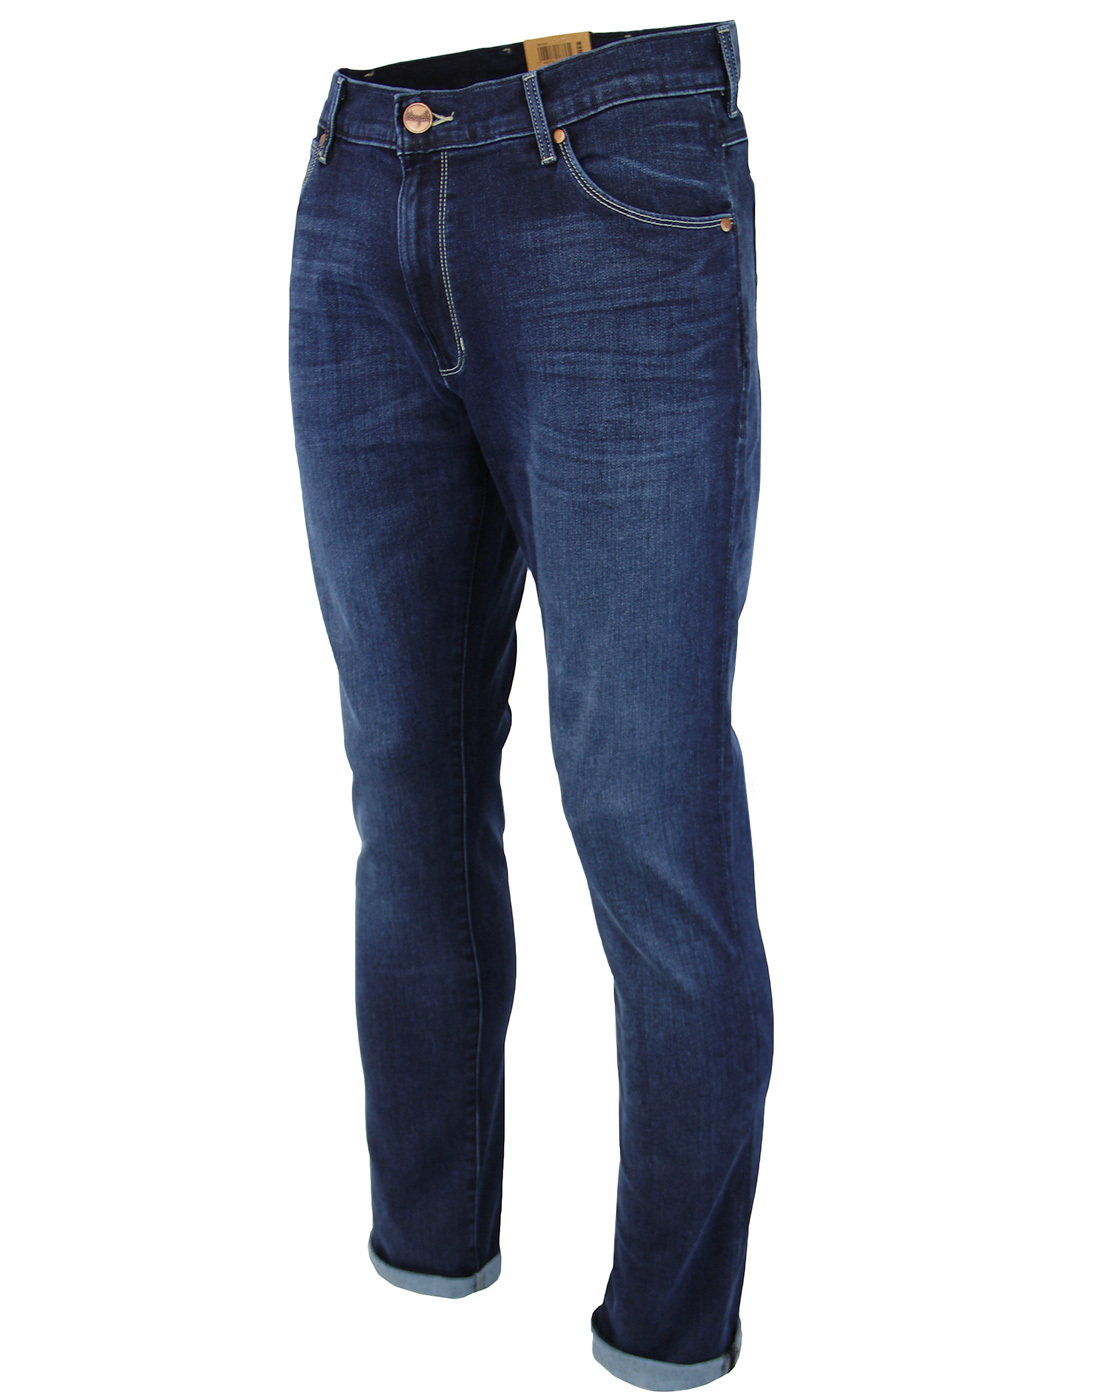 cca39246 Larston WRANGLER Slim Soft Luxe Denim Jeans in Comfy Break Blue